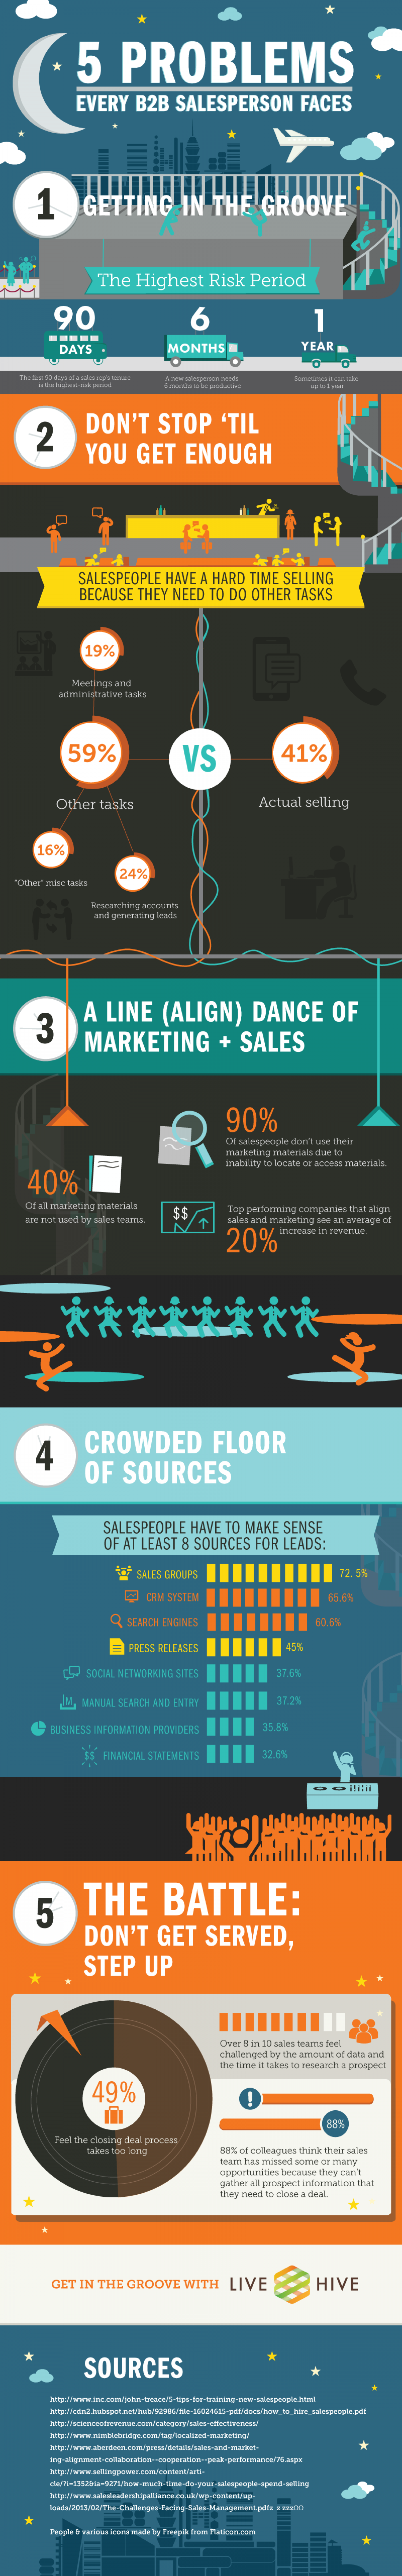 5 Problems Every B2B Salesperson Faces Infographic